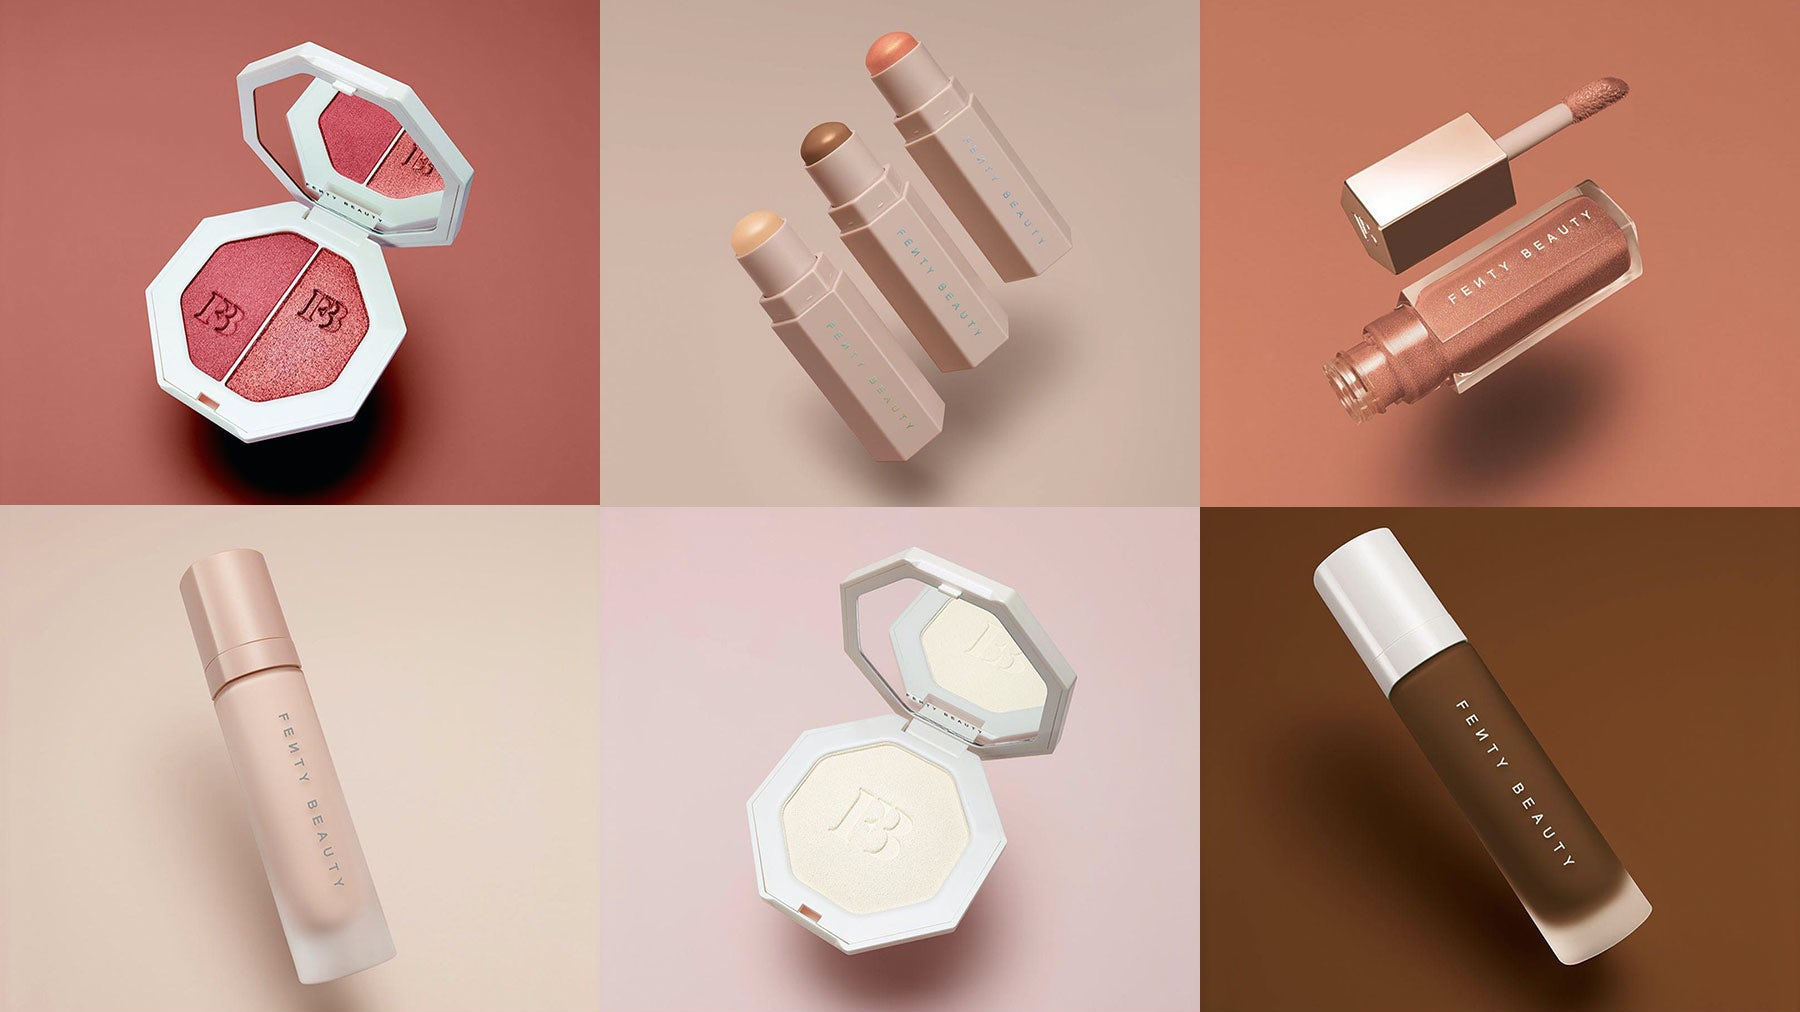 Fenty Beauty | Source: Fenty Beauty